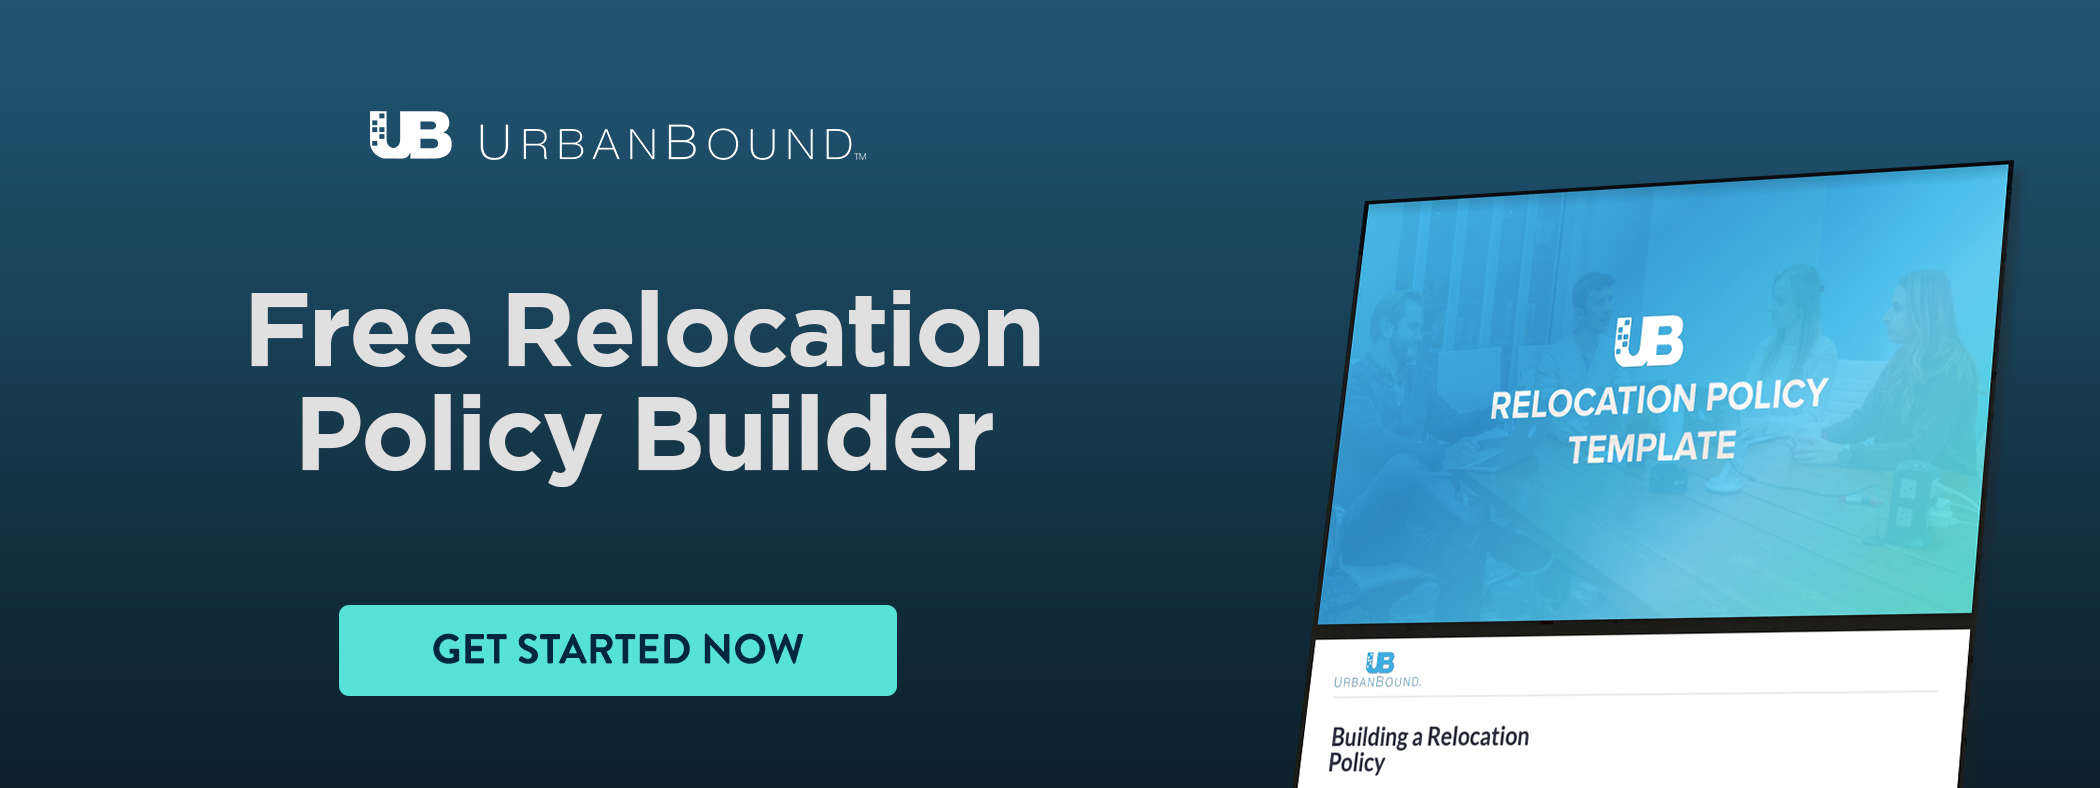 Free Relocation Policy Builder